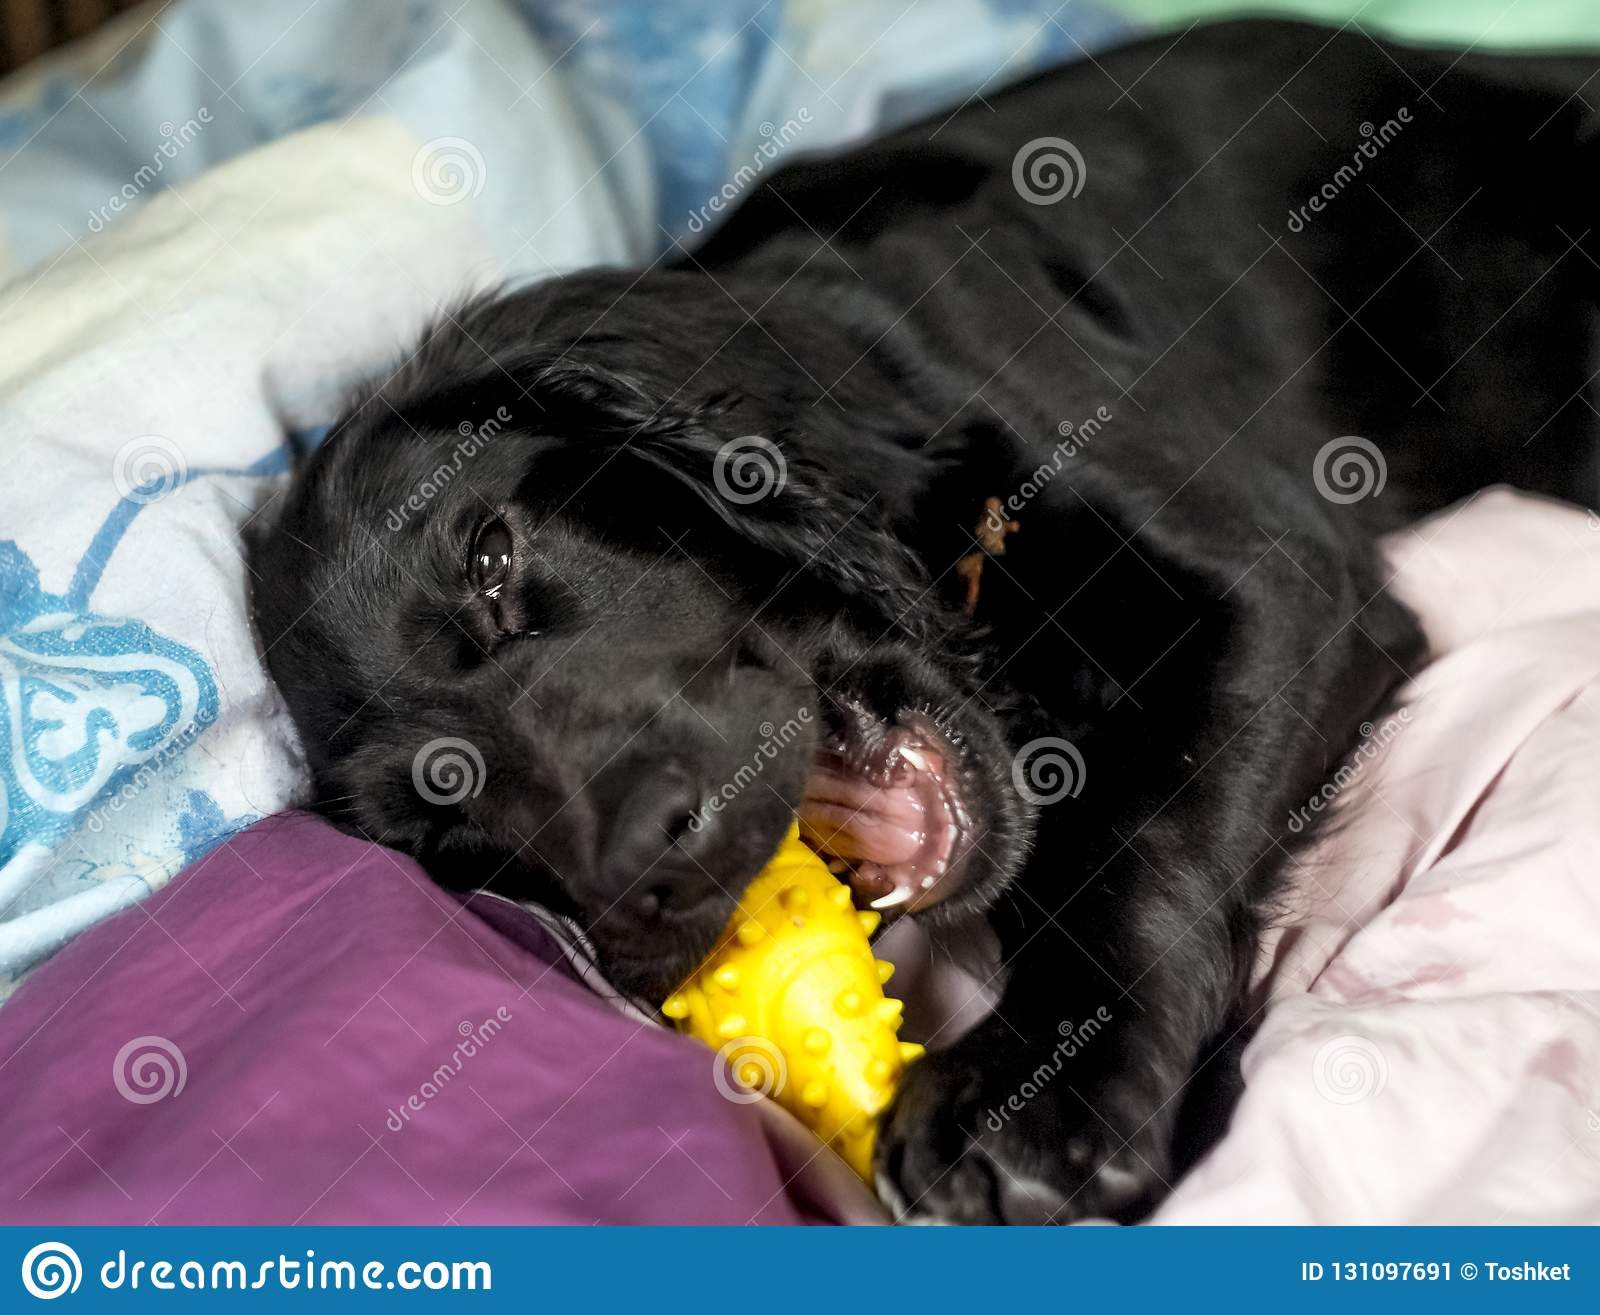 Black Cocker Spaniel Puppy Playing With Toy On His Litter Stock Image Image Of Single Beautifully 131097691